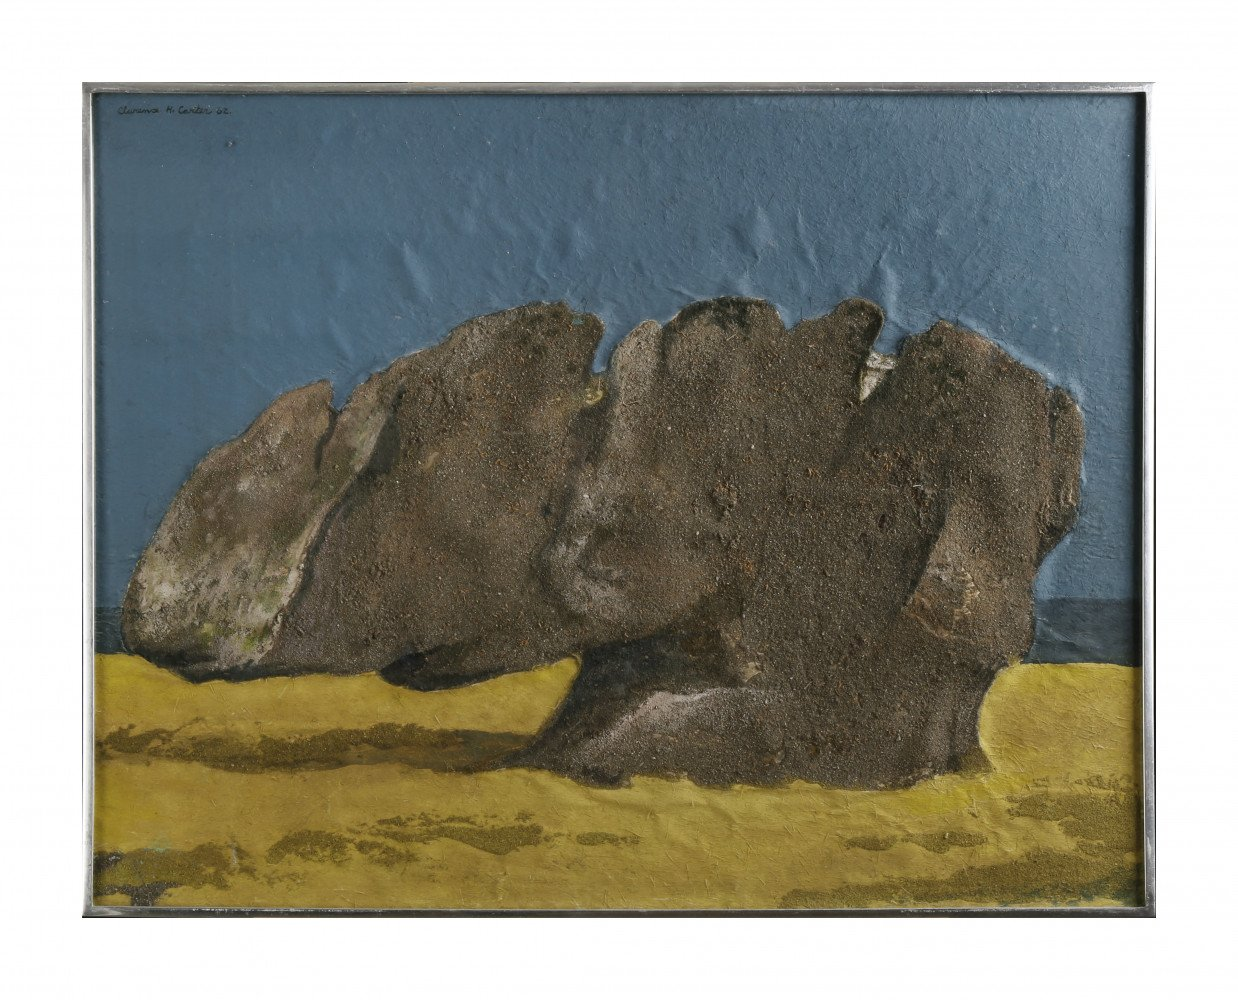 Abstract Landscape Acrylic and Sand on Scintilla Painting: